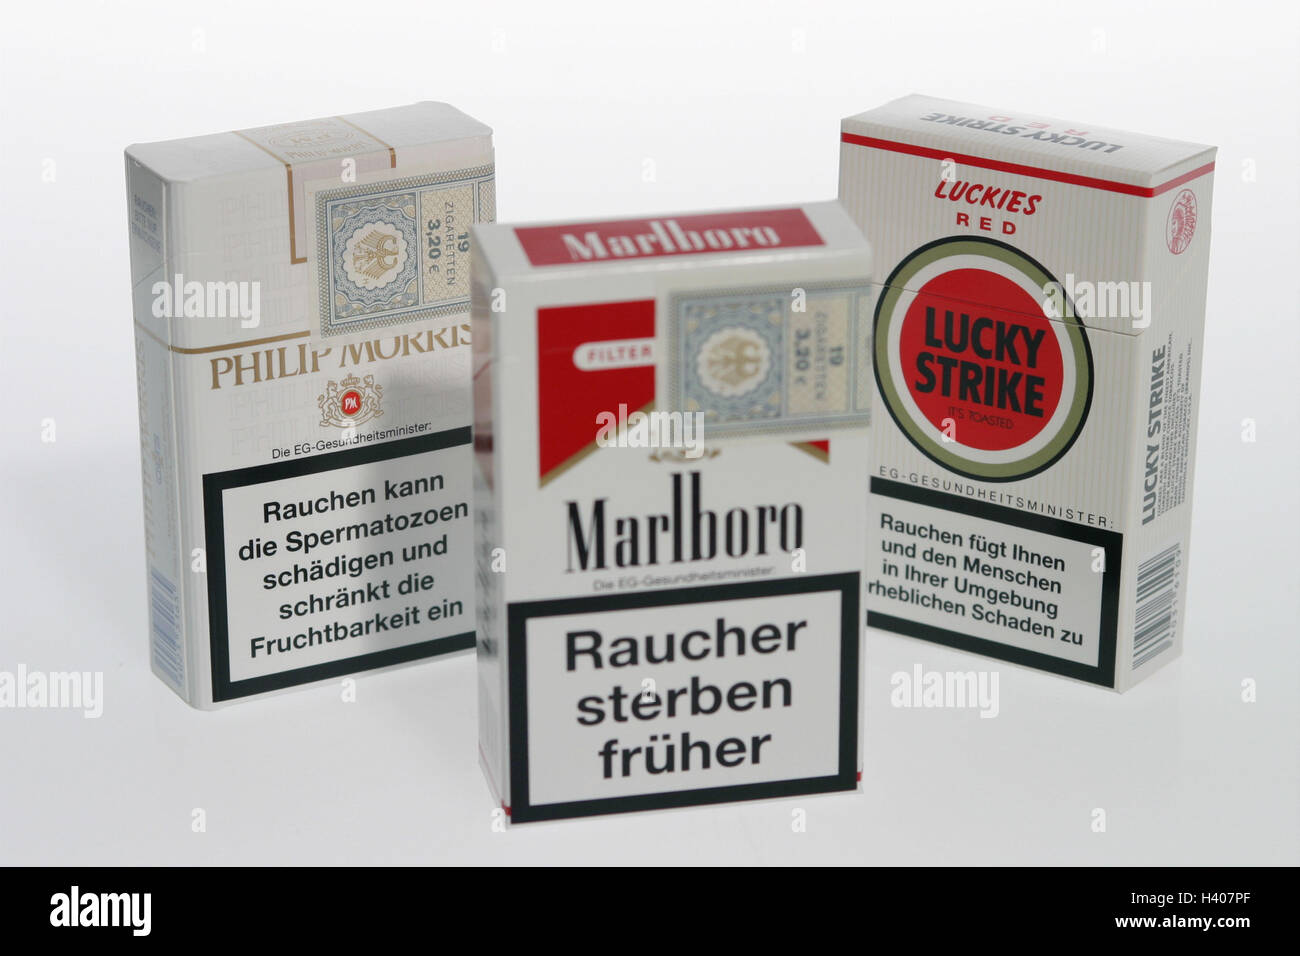 Cost of pack of cigarettes Marlboro in Vermont state